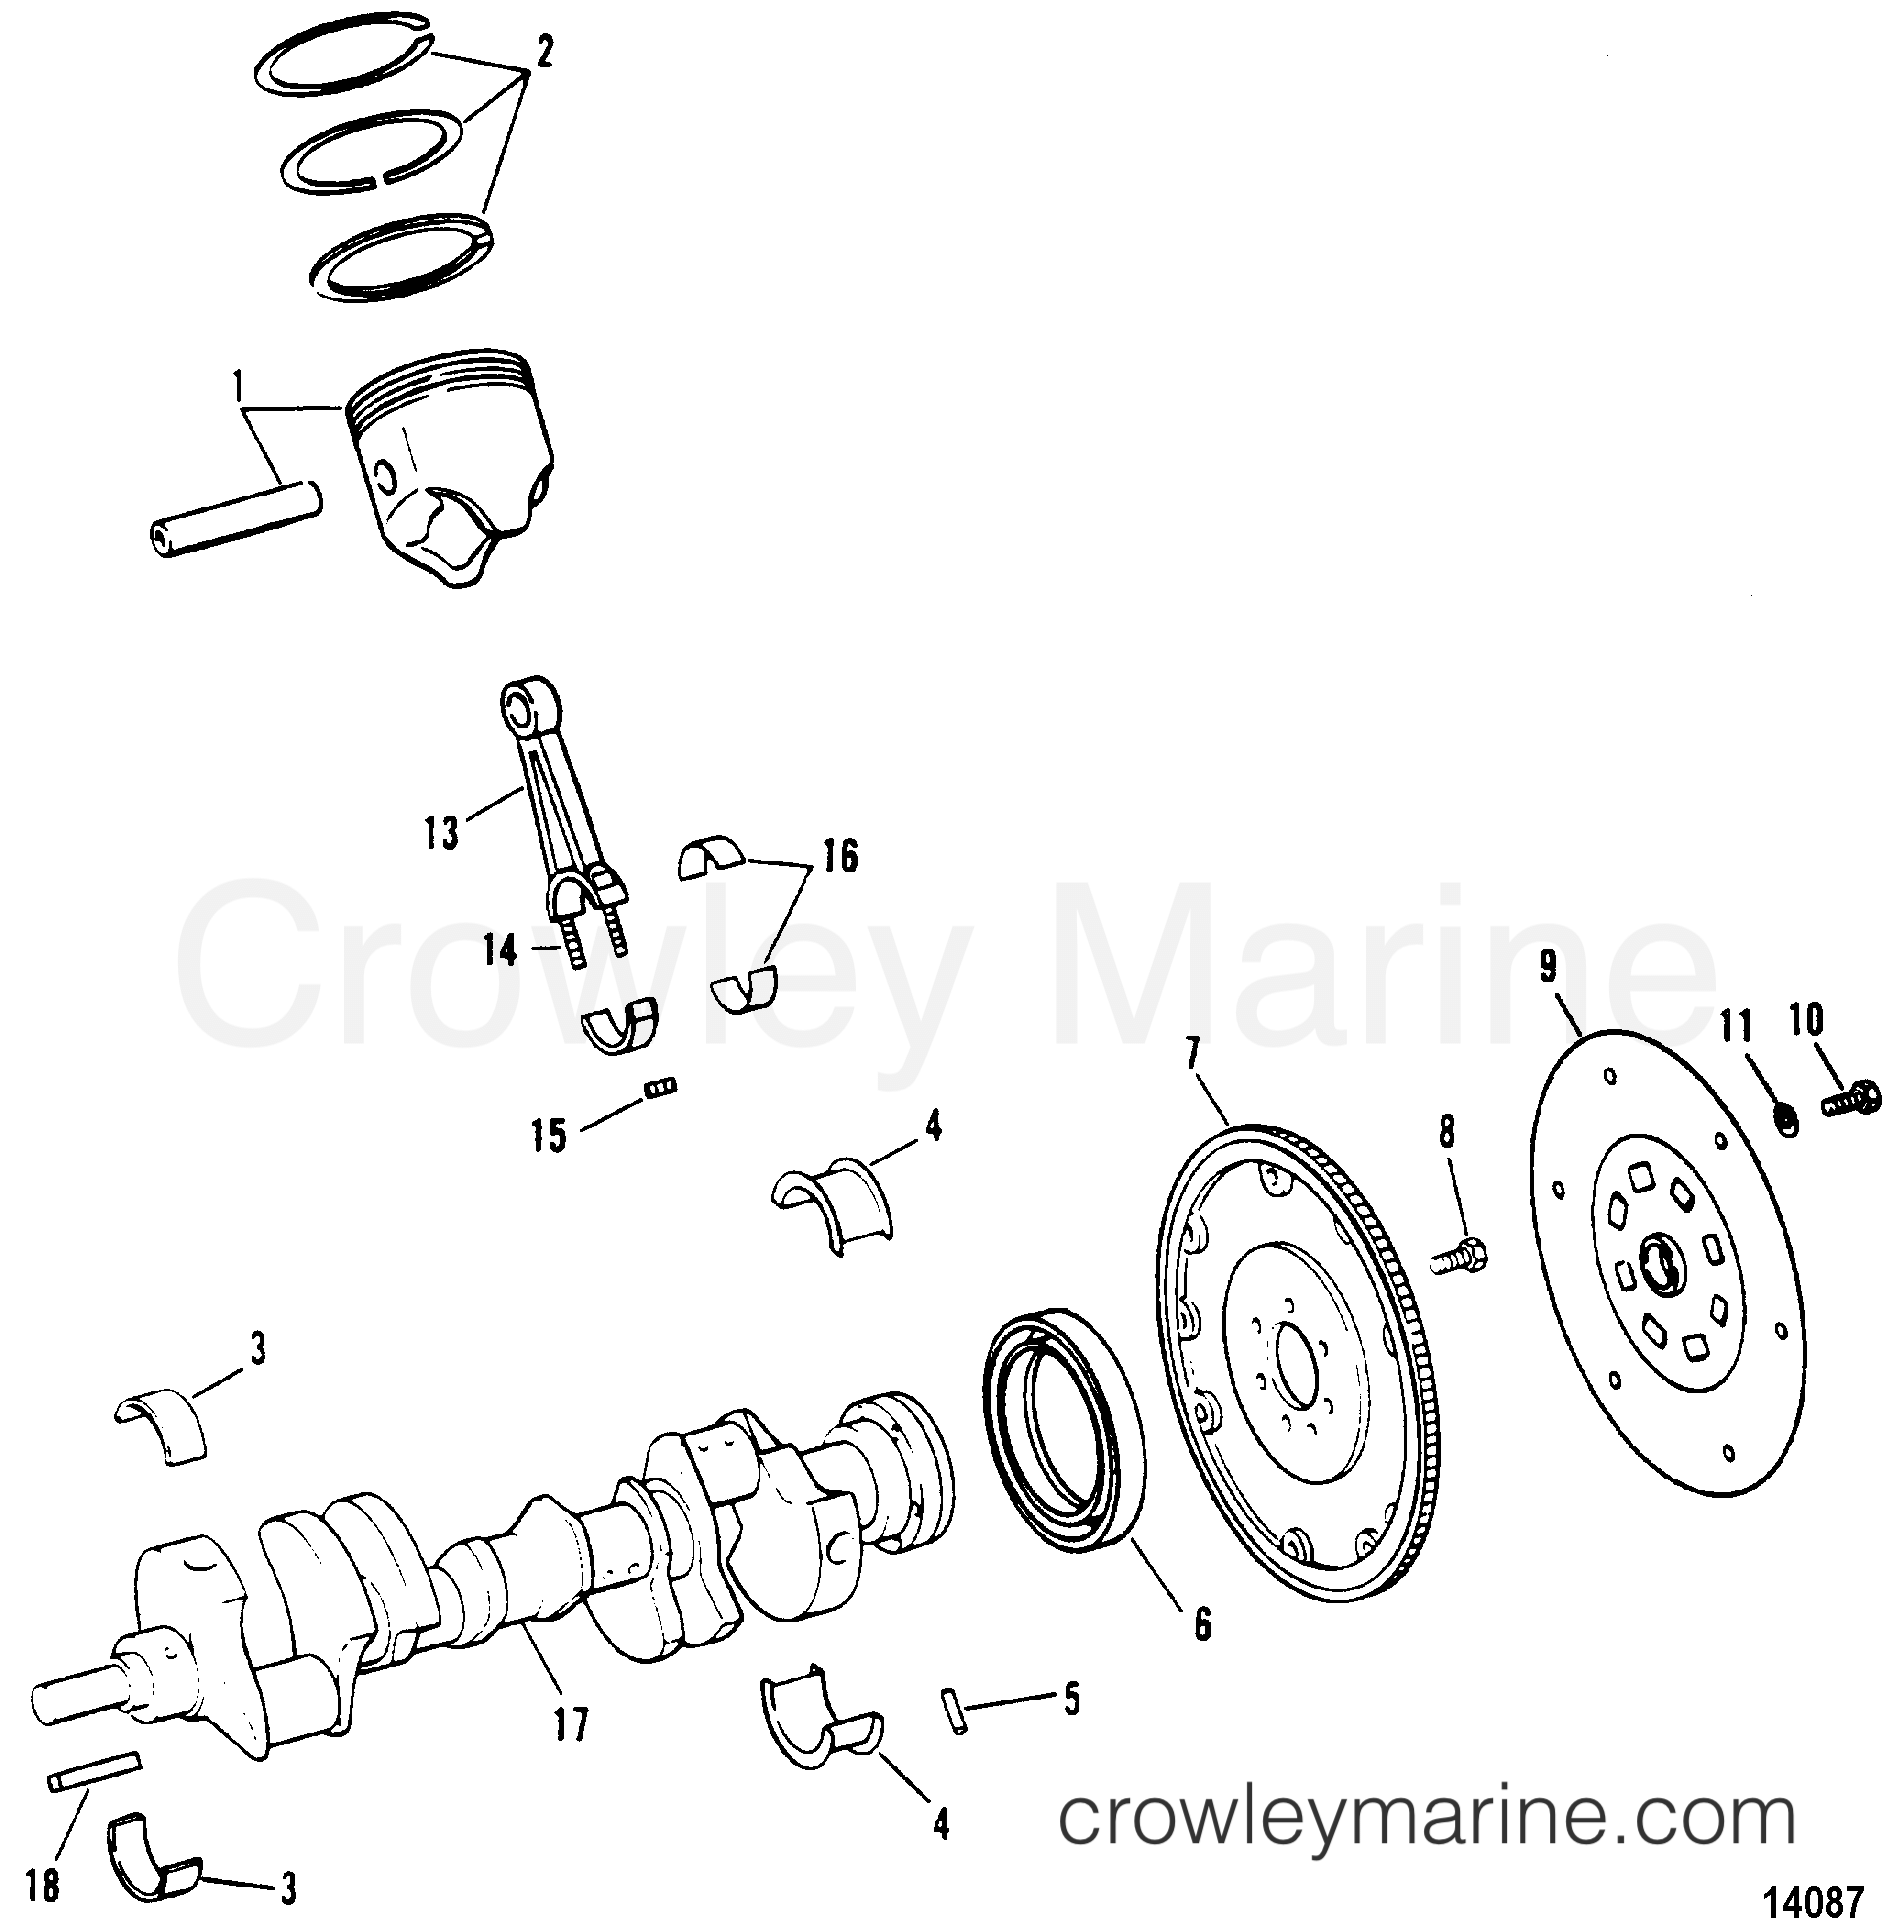 1994 Mercury Inboard Engine 7.4L [CARB] - 37431L6GS CRANKSHAFT, PISTONS AND CONNECTING RODS section